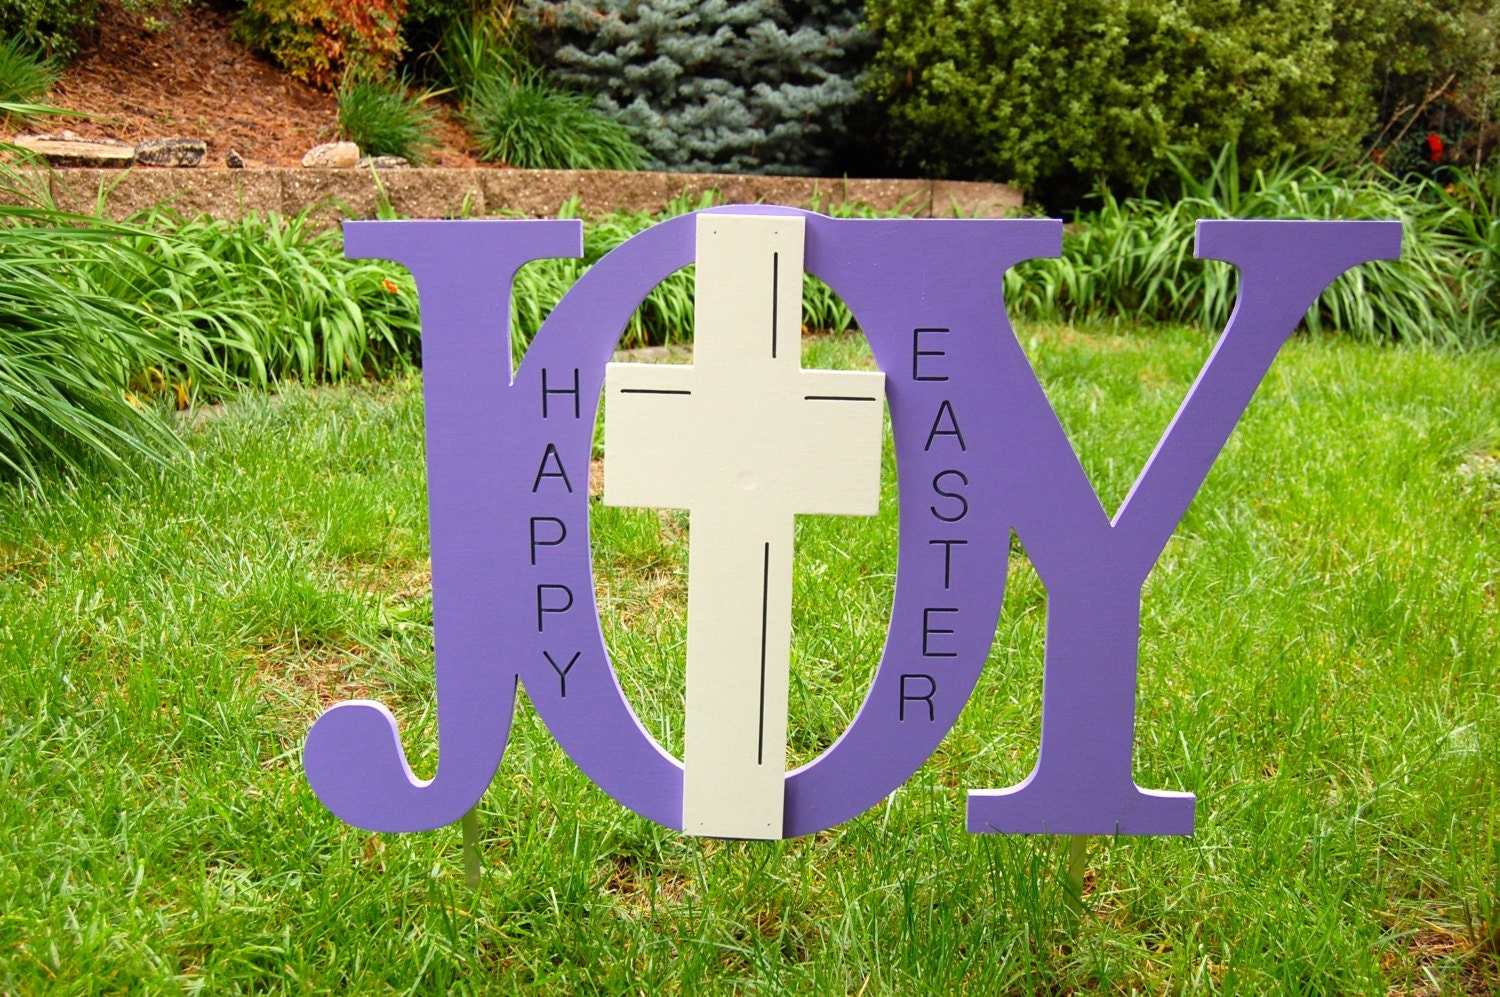 Religious easter yard decorations -  Zoom